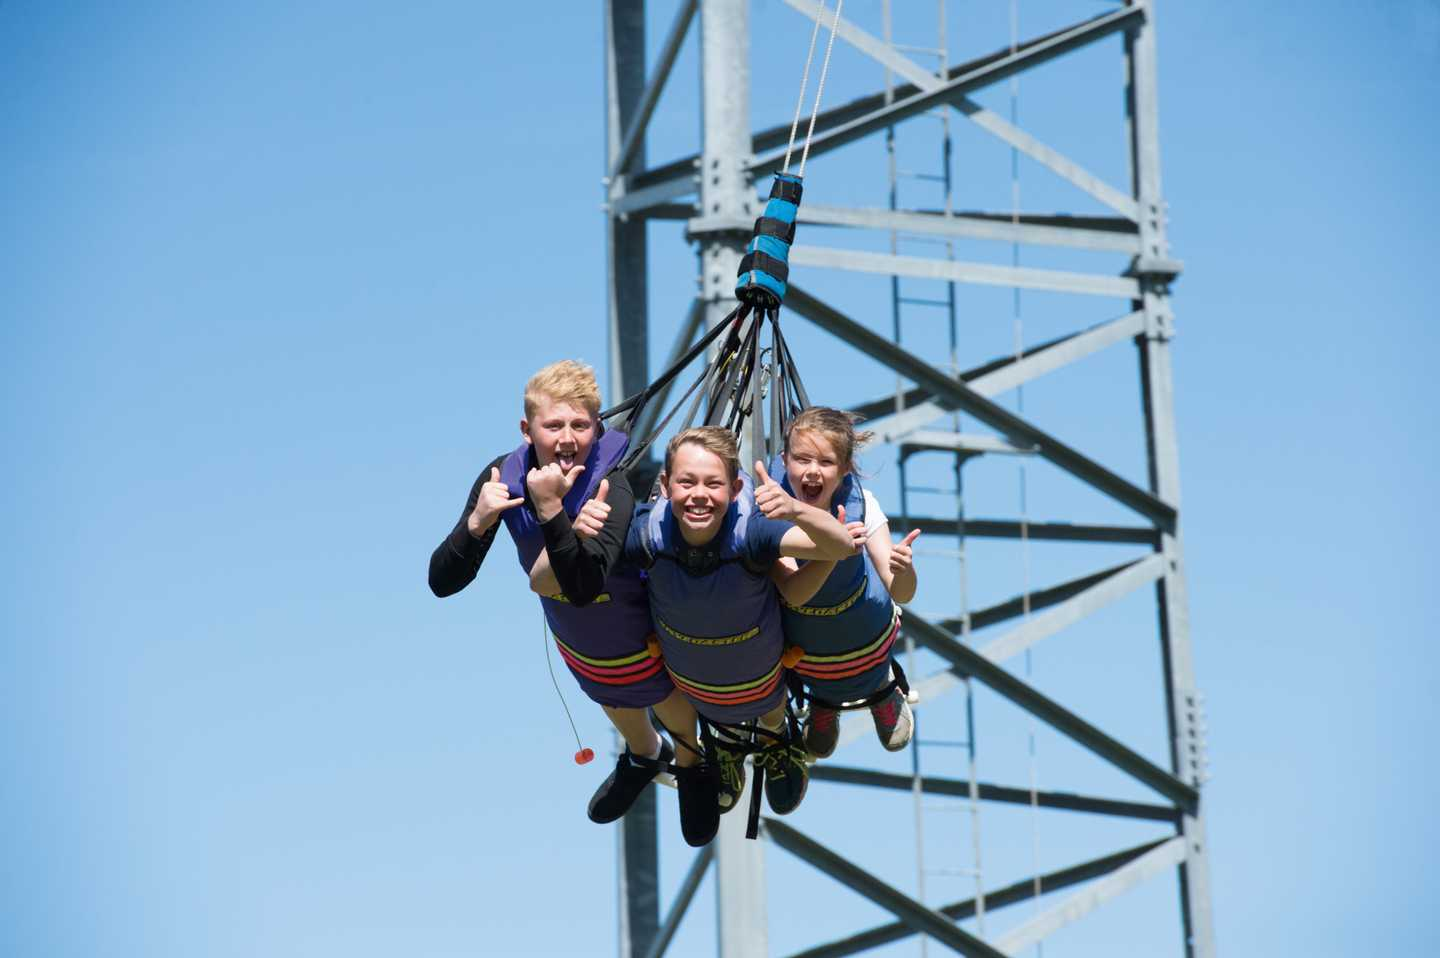 3 Children on a sky swing